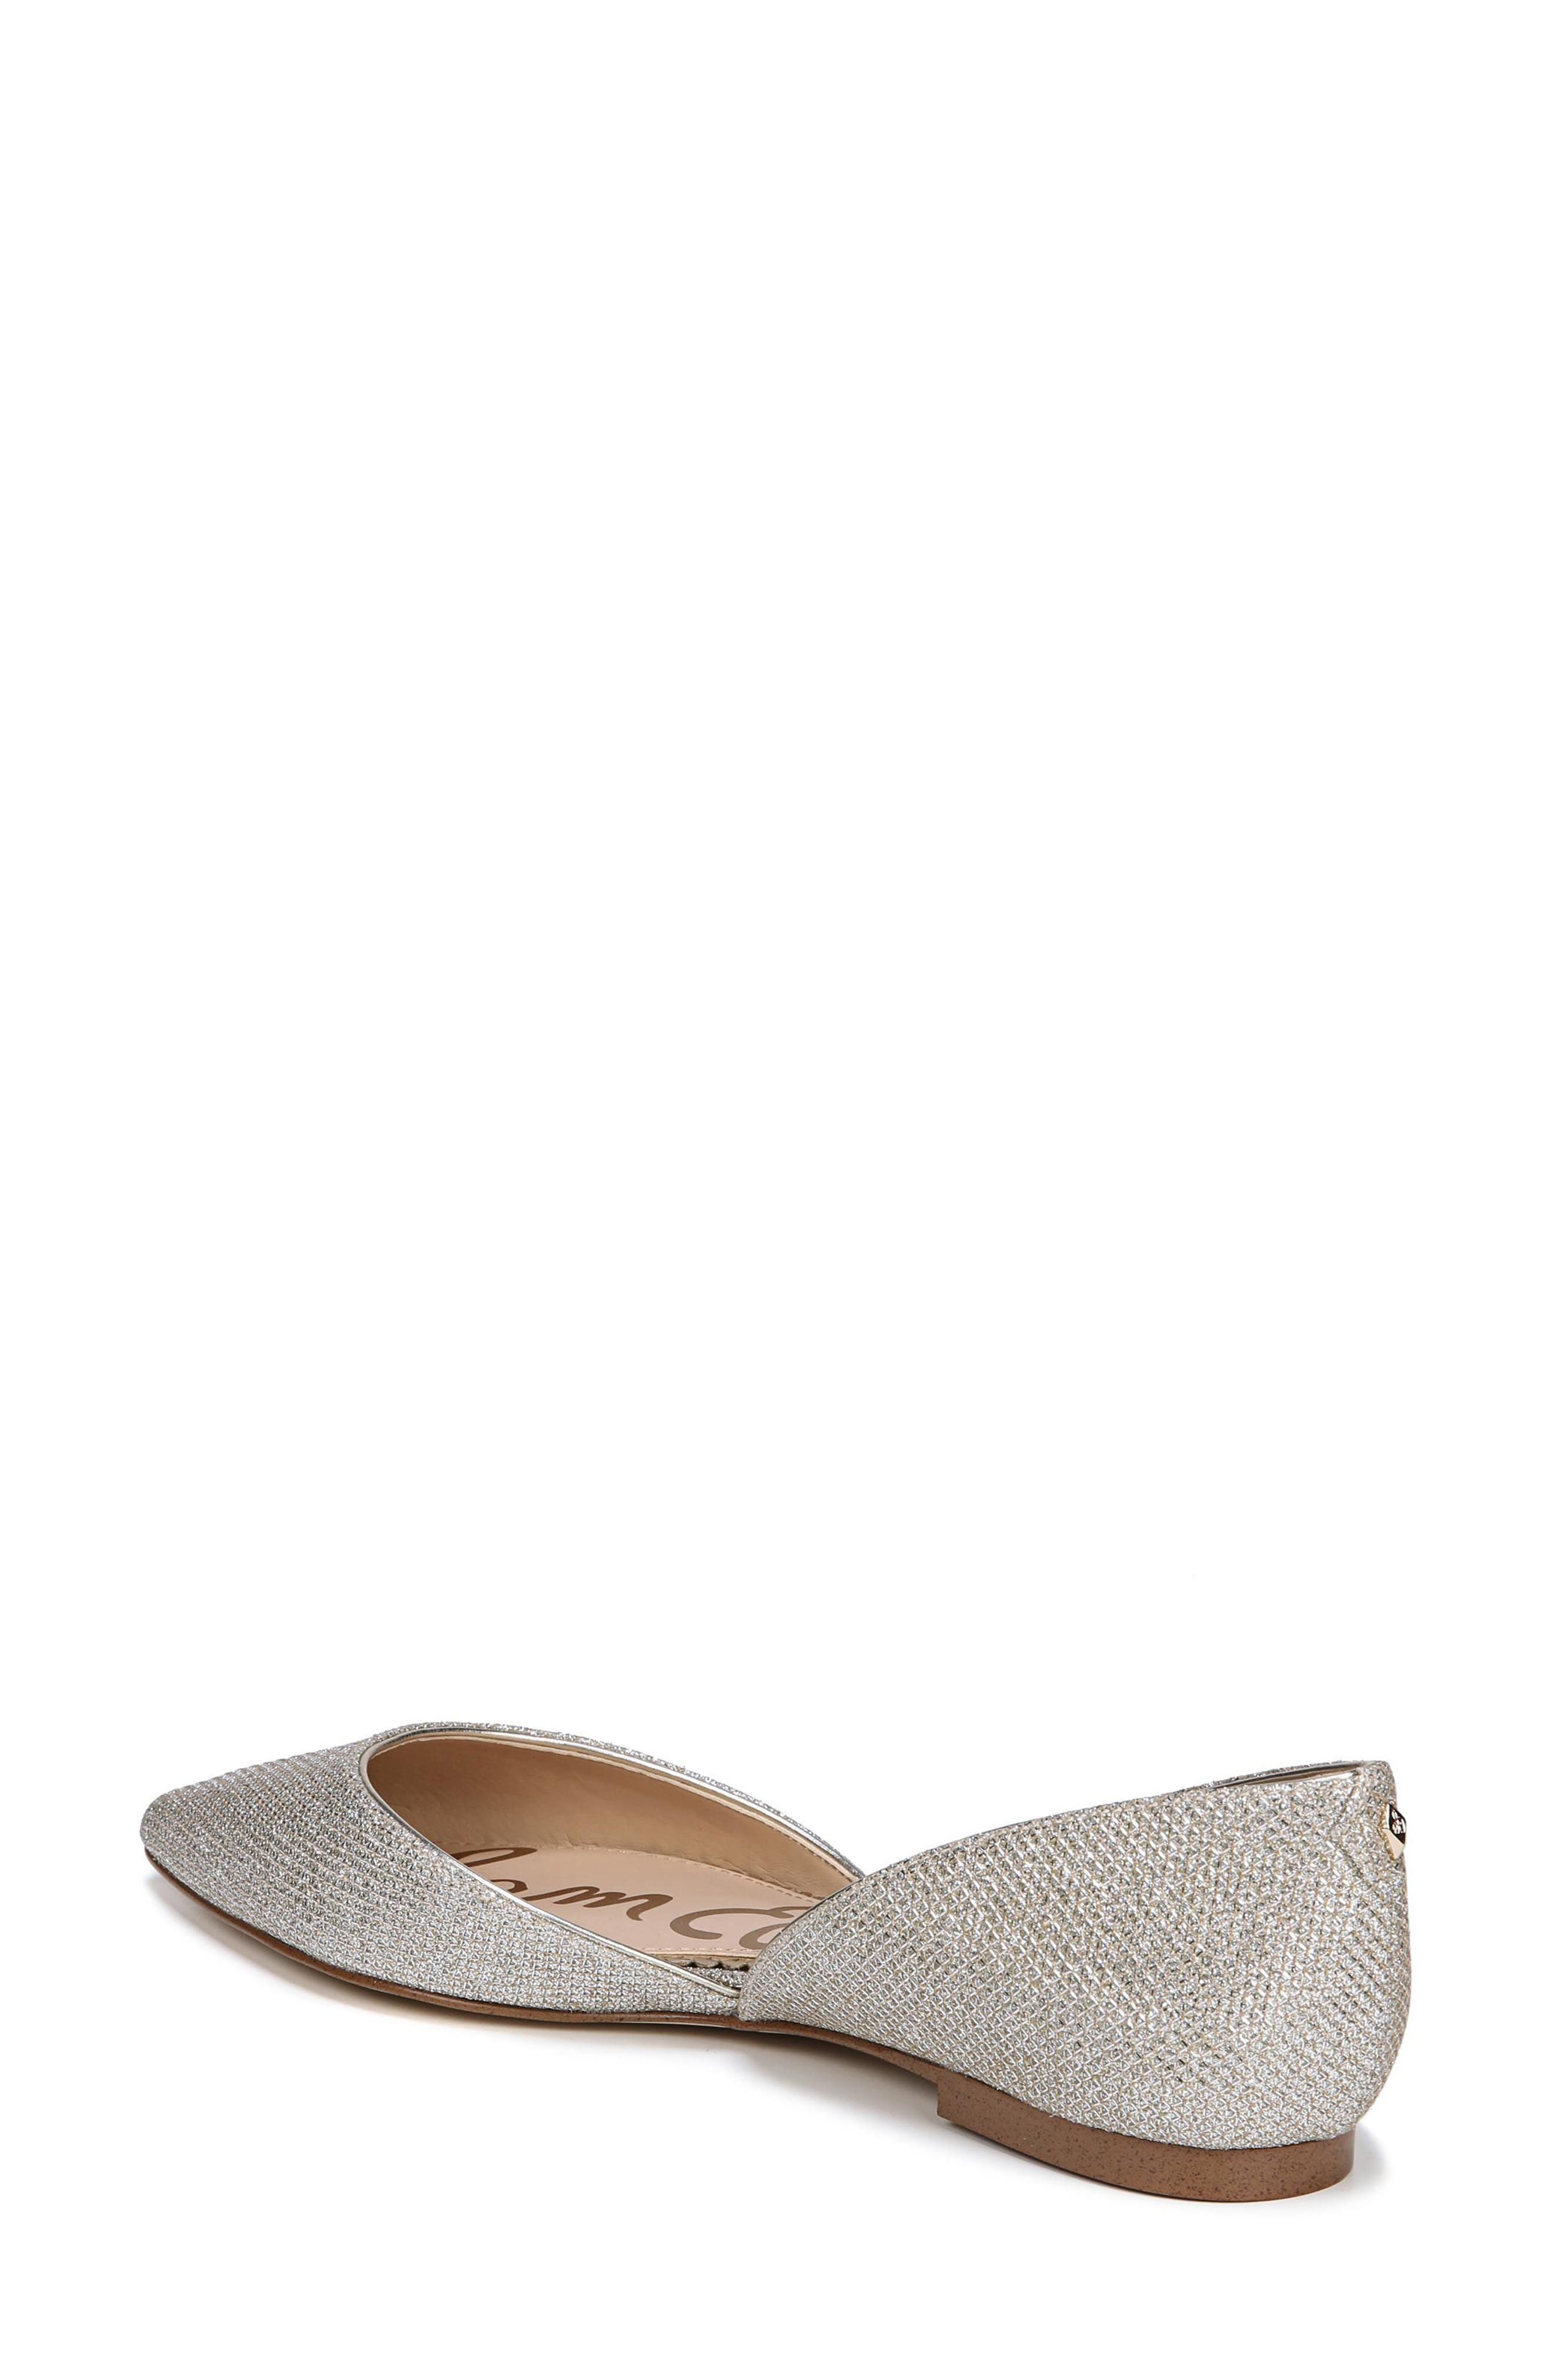 Rodney Pointy Toe d'Orsay Flat,                             Alternate thumbnail 2, color,                             JUTE GLAM FABRIC